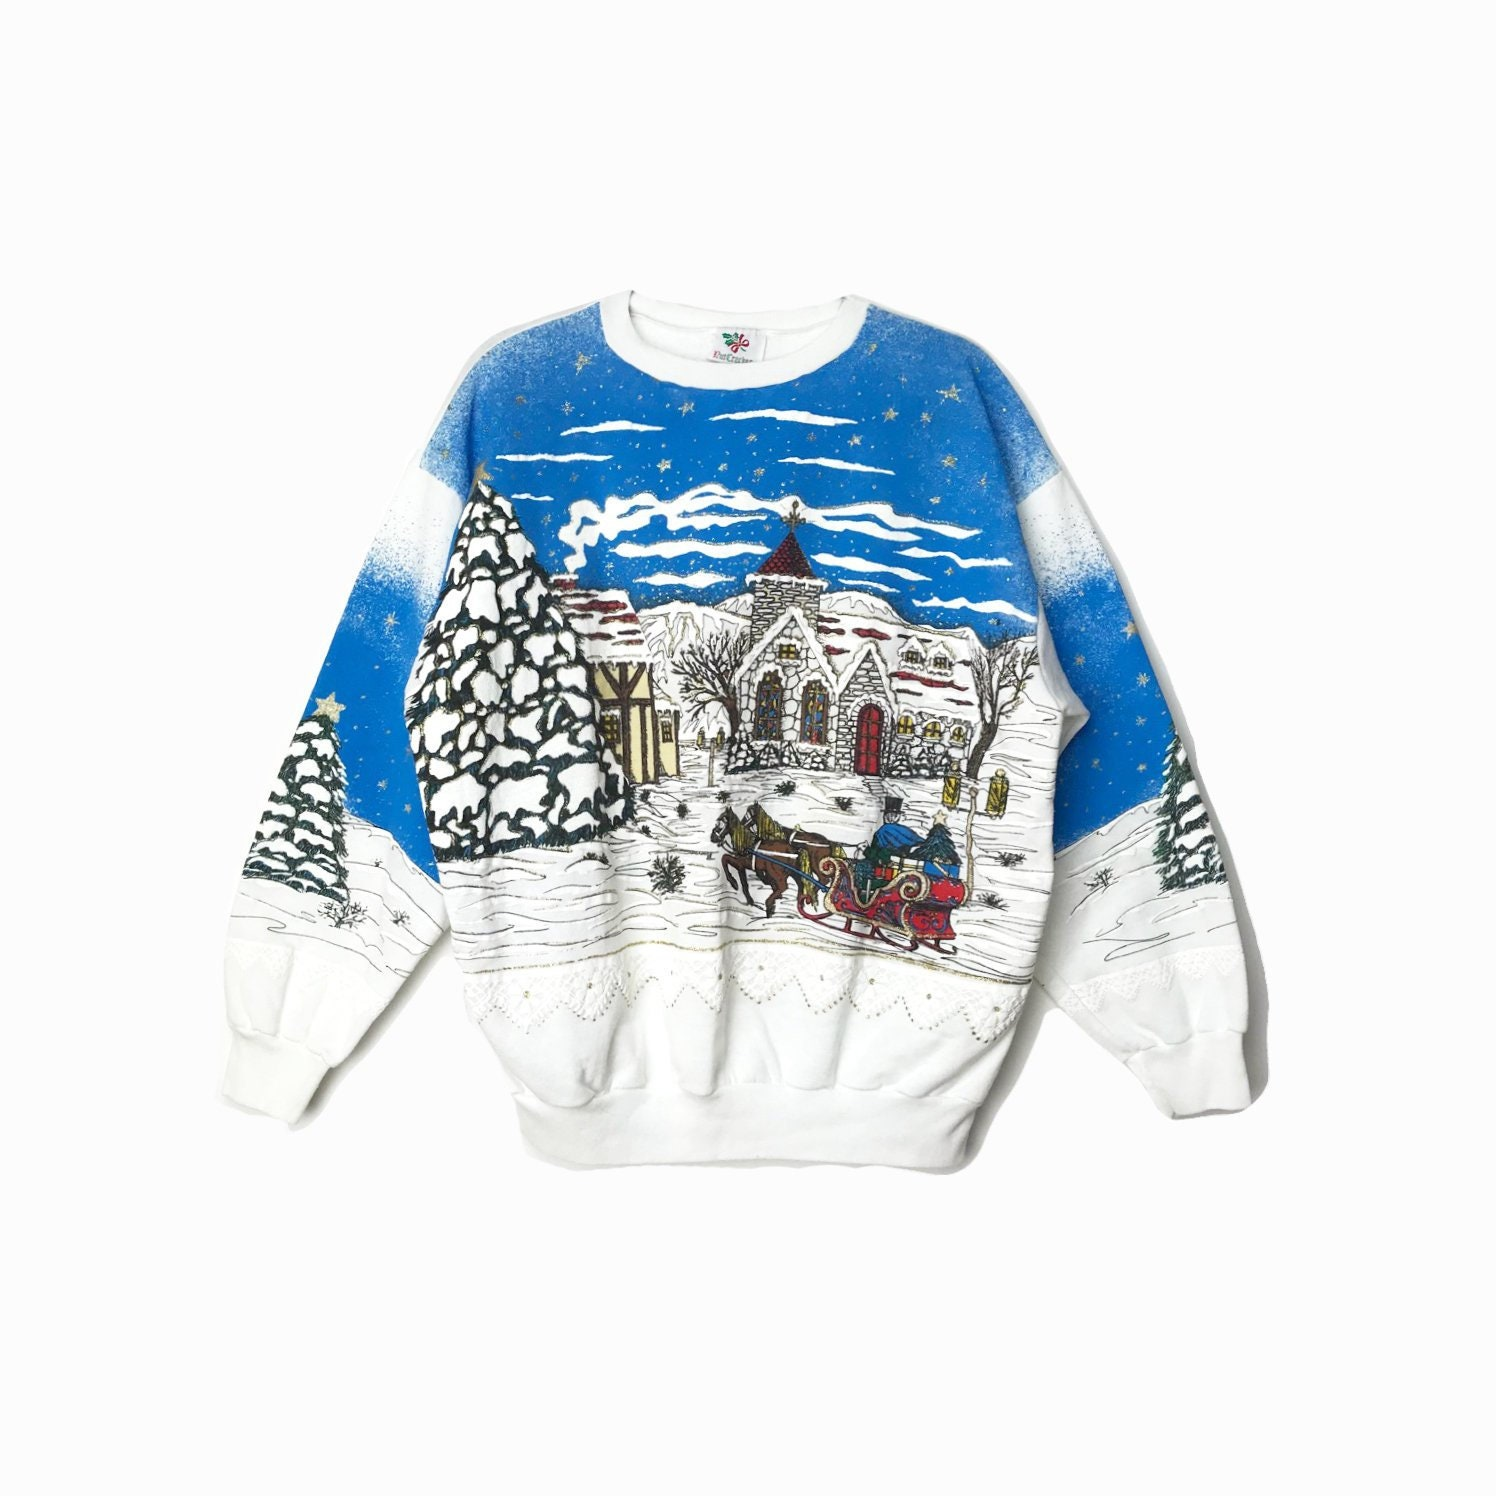 Blue And White Christmas Sweater.90s White Ugly Christmas Sweater Vintage Tacky Sweater